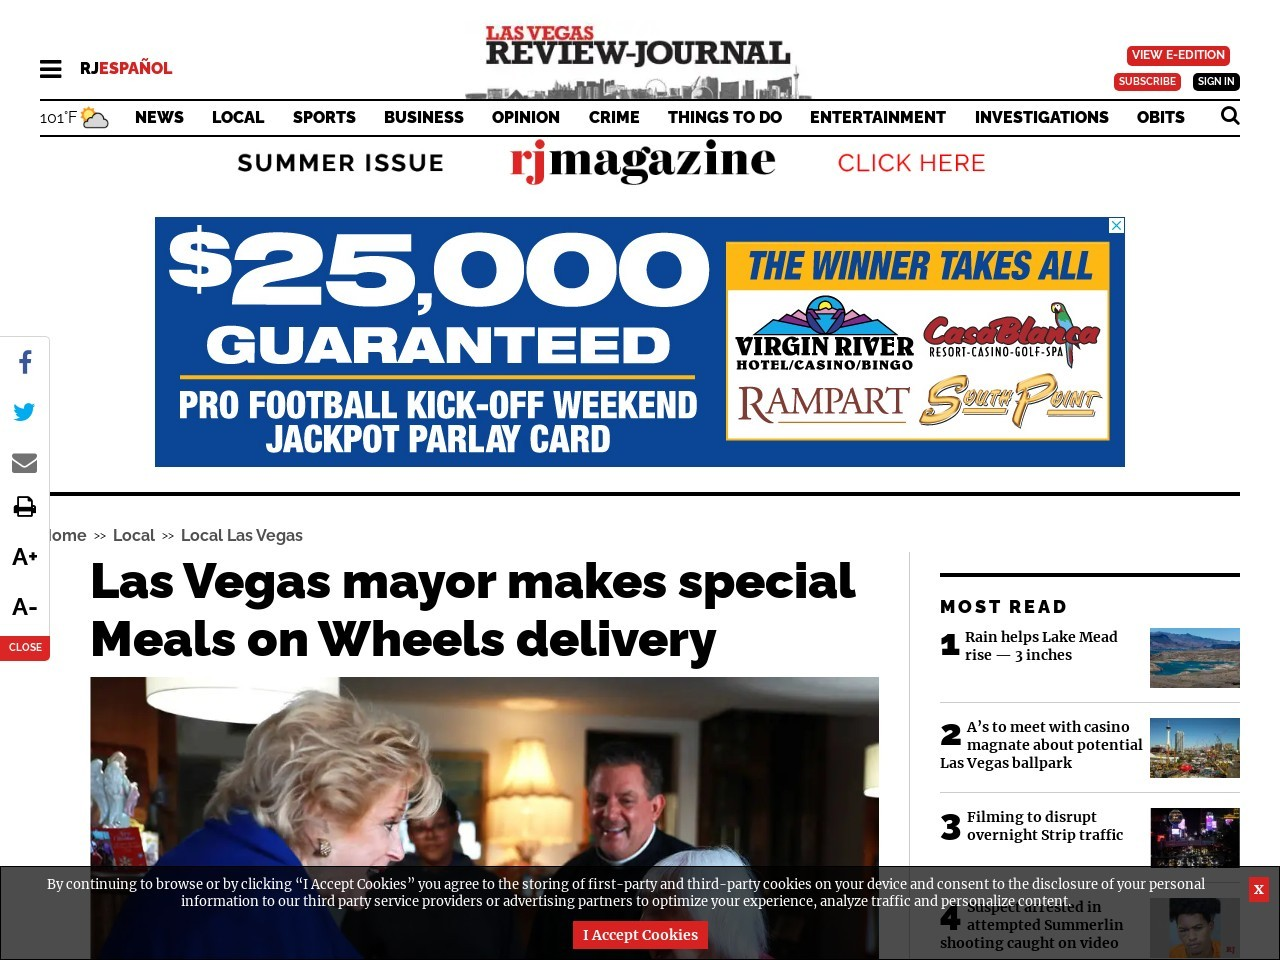 Las Vegas mayor makes special Meals on Wheels delivery